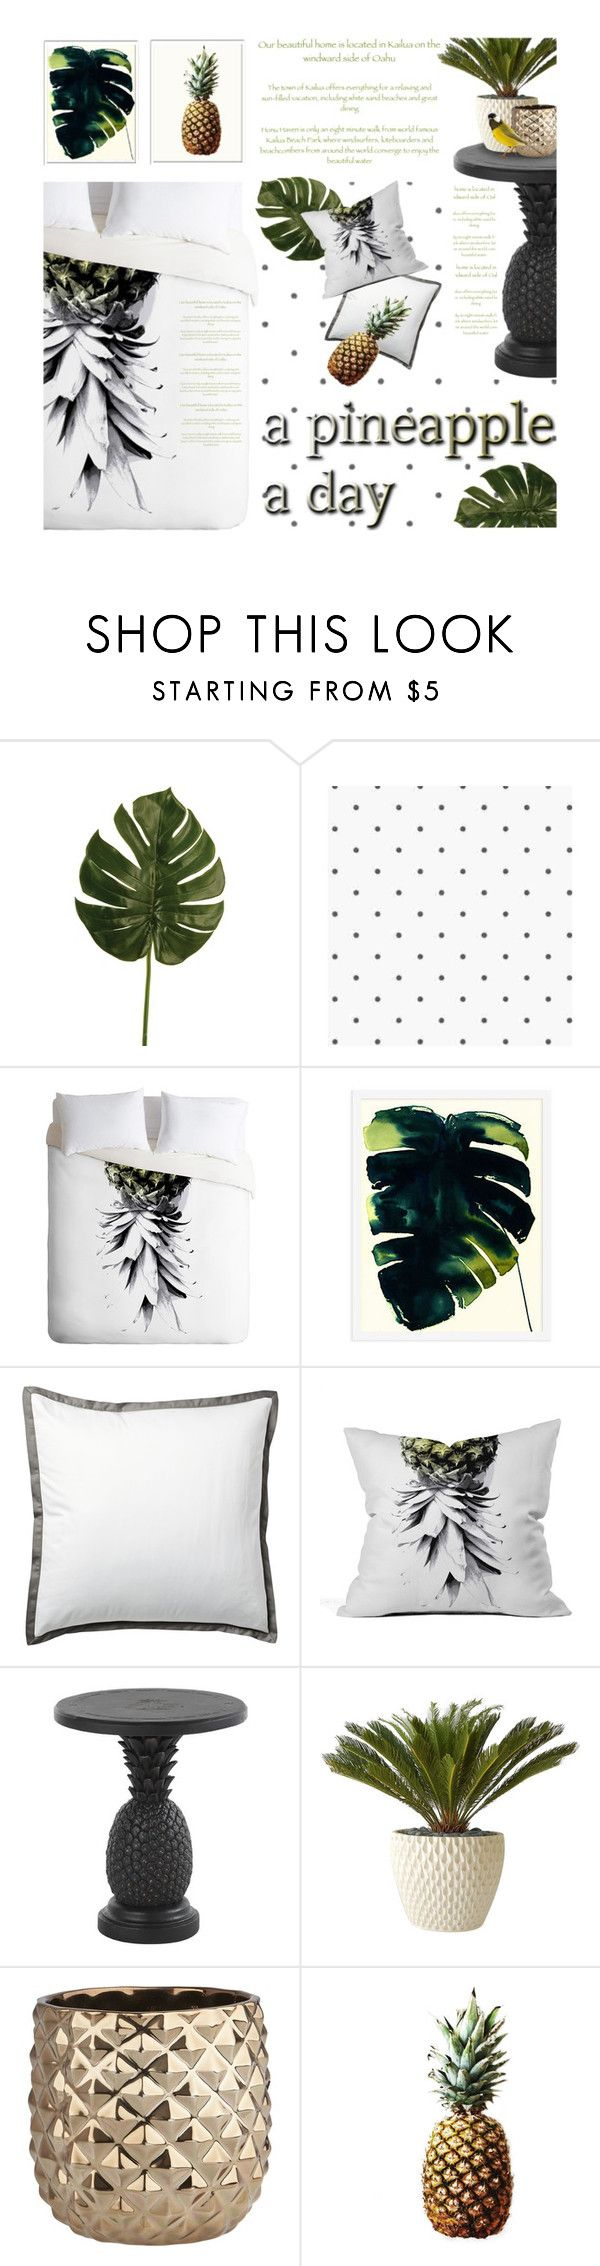 """Pineapple Bedroom"" by kearalachelle on Polyvore featuring interior, interiors, interior design, home, home decor, interior decorating, Linea, Dot & Bo, Serena & Lily and Tommy Bahama"